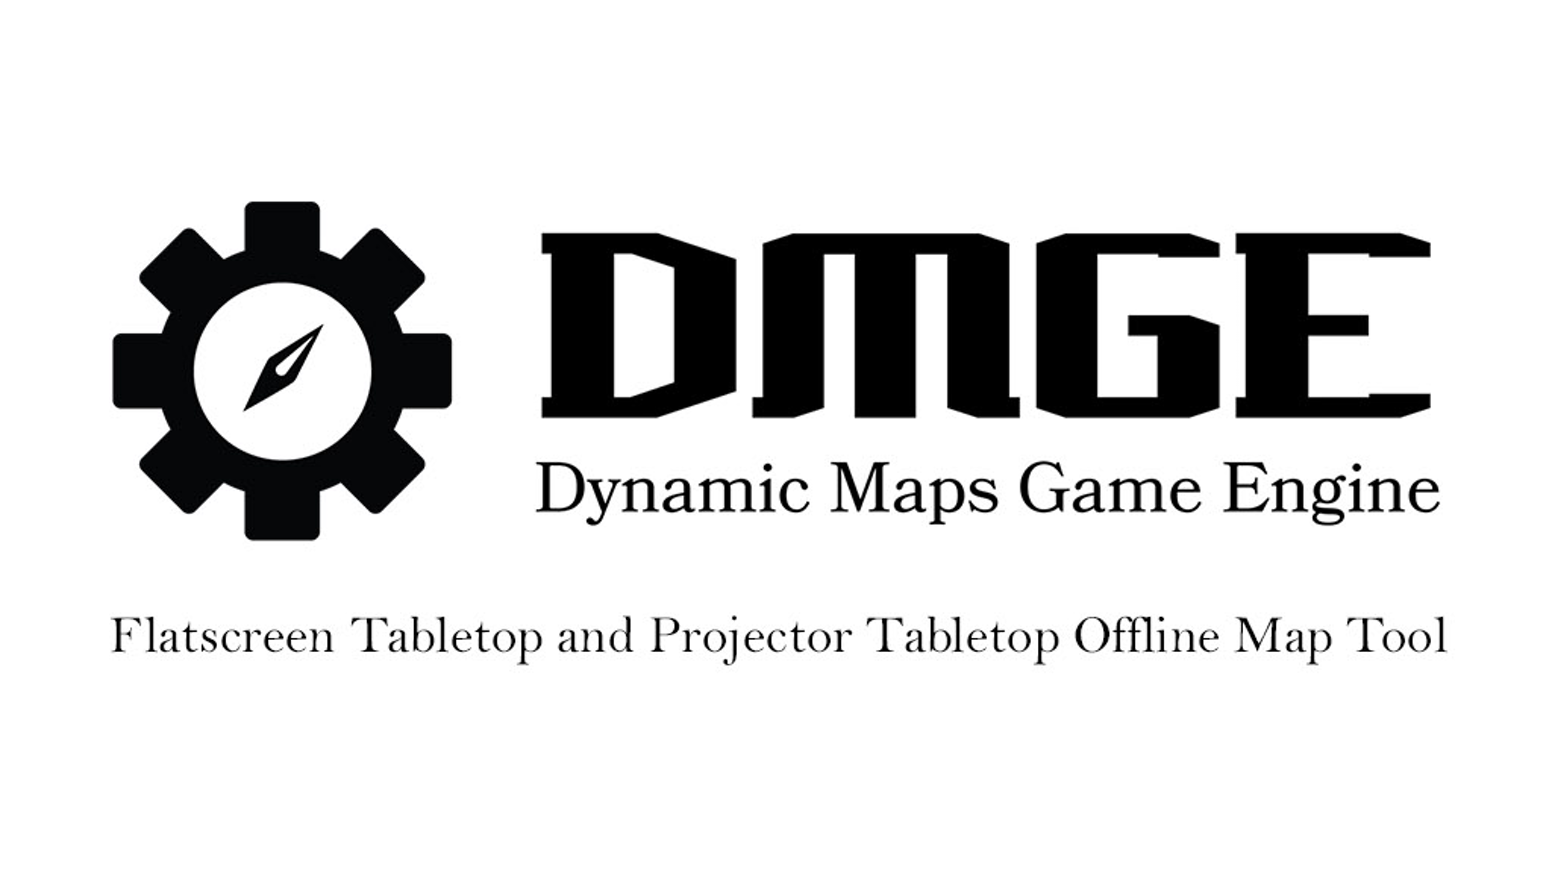 Web app for using any browser compatible resource as a map asset in a robust flatscreen or projected table top map.  Now in development.